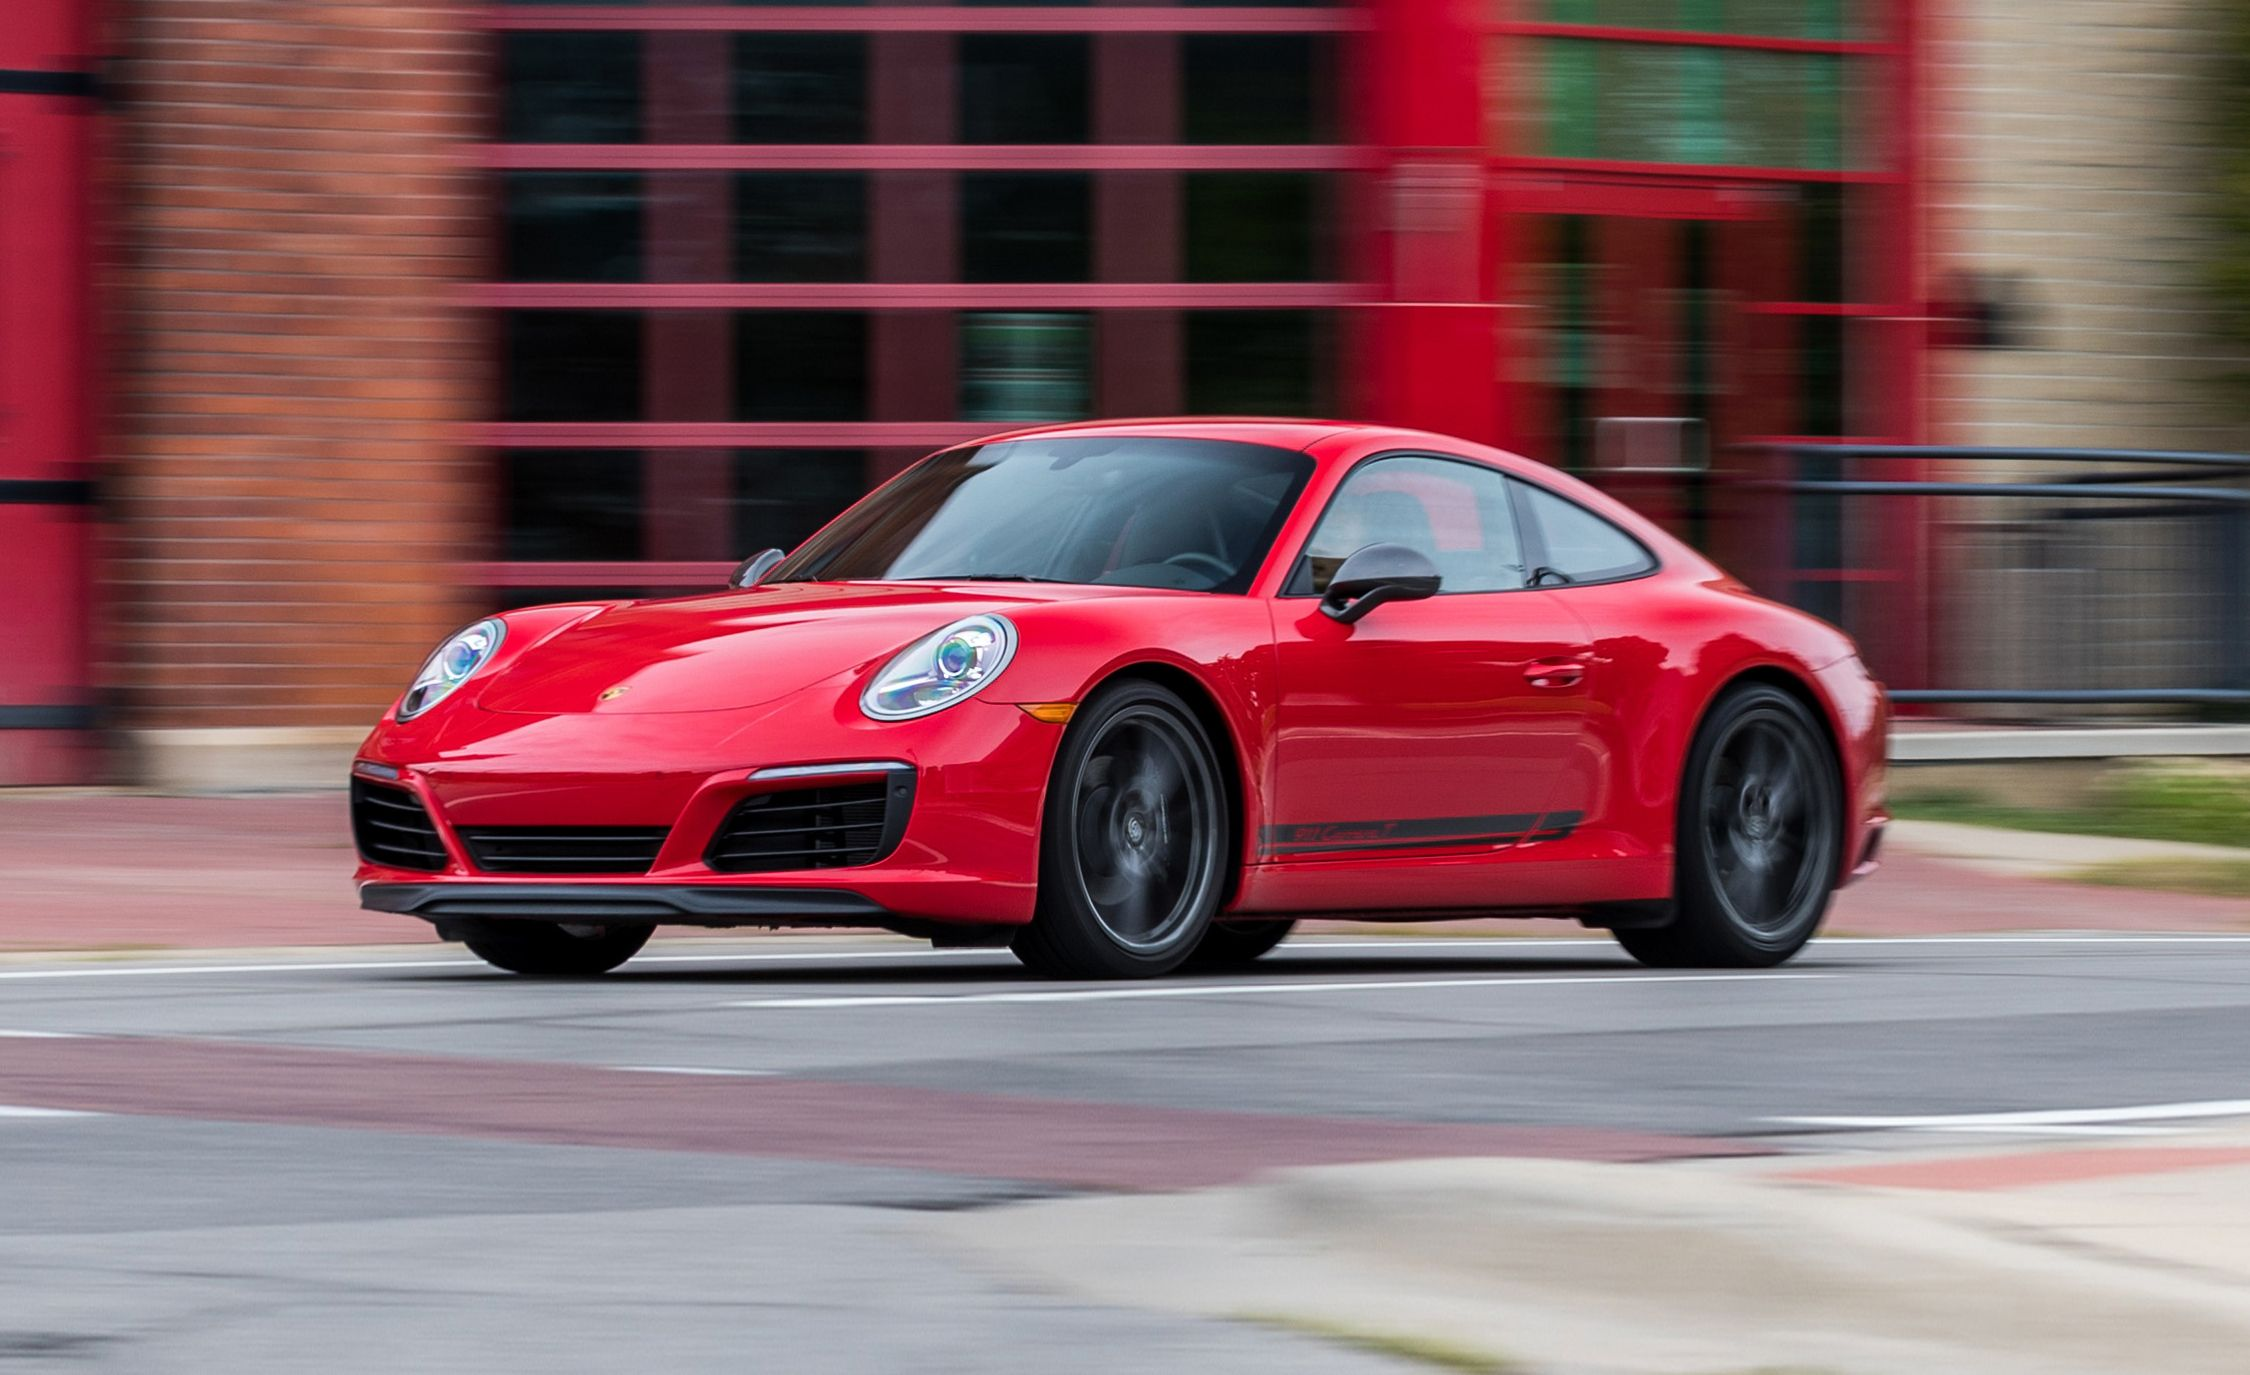 2020 Porsche 911 Reviews | Porsche 911 Price, Photos, and ...